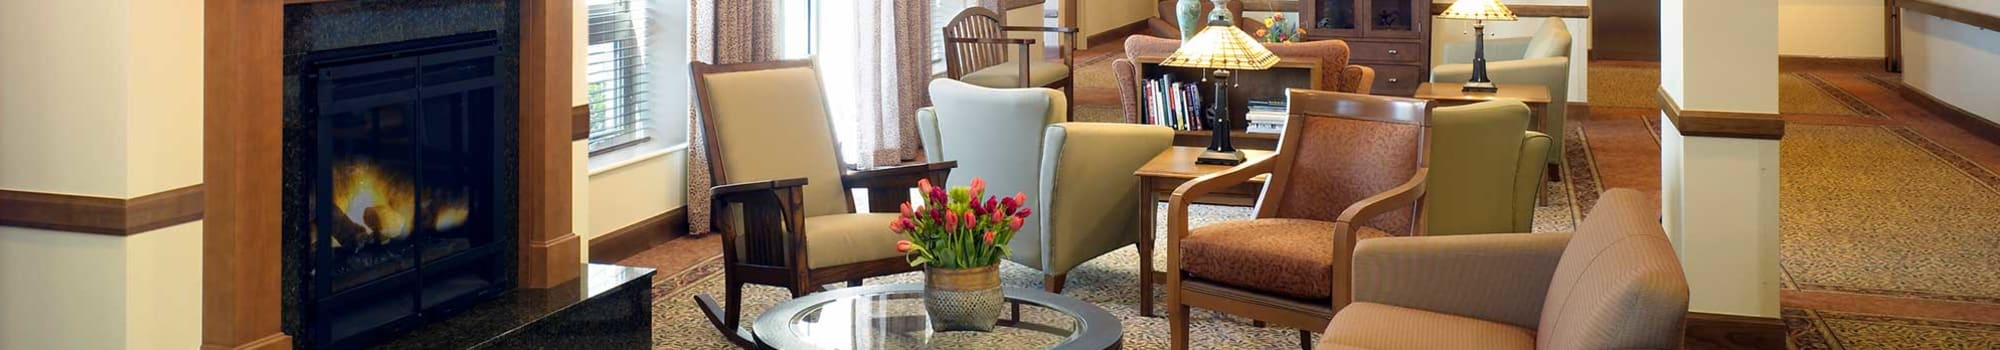 Assisted living in Fairfield, IL